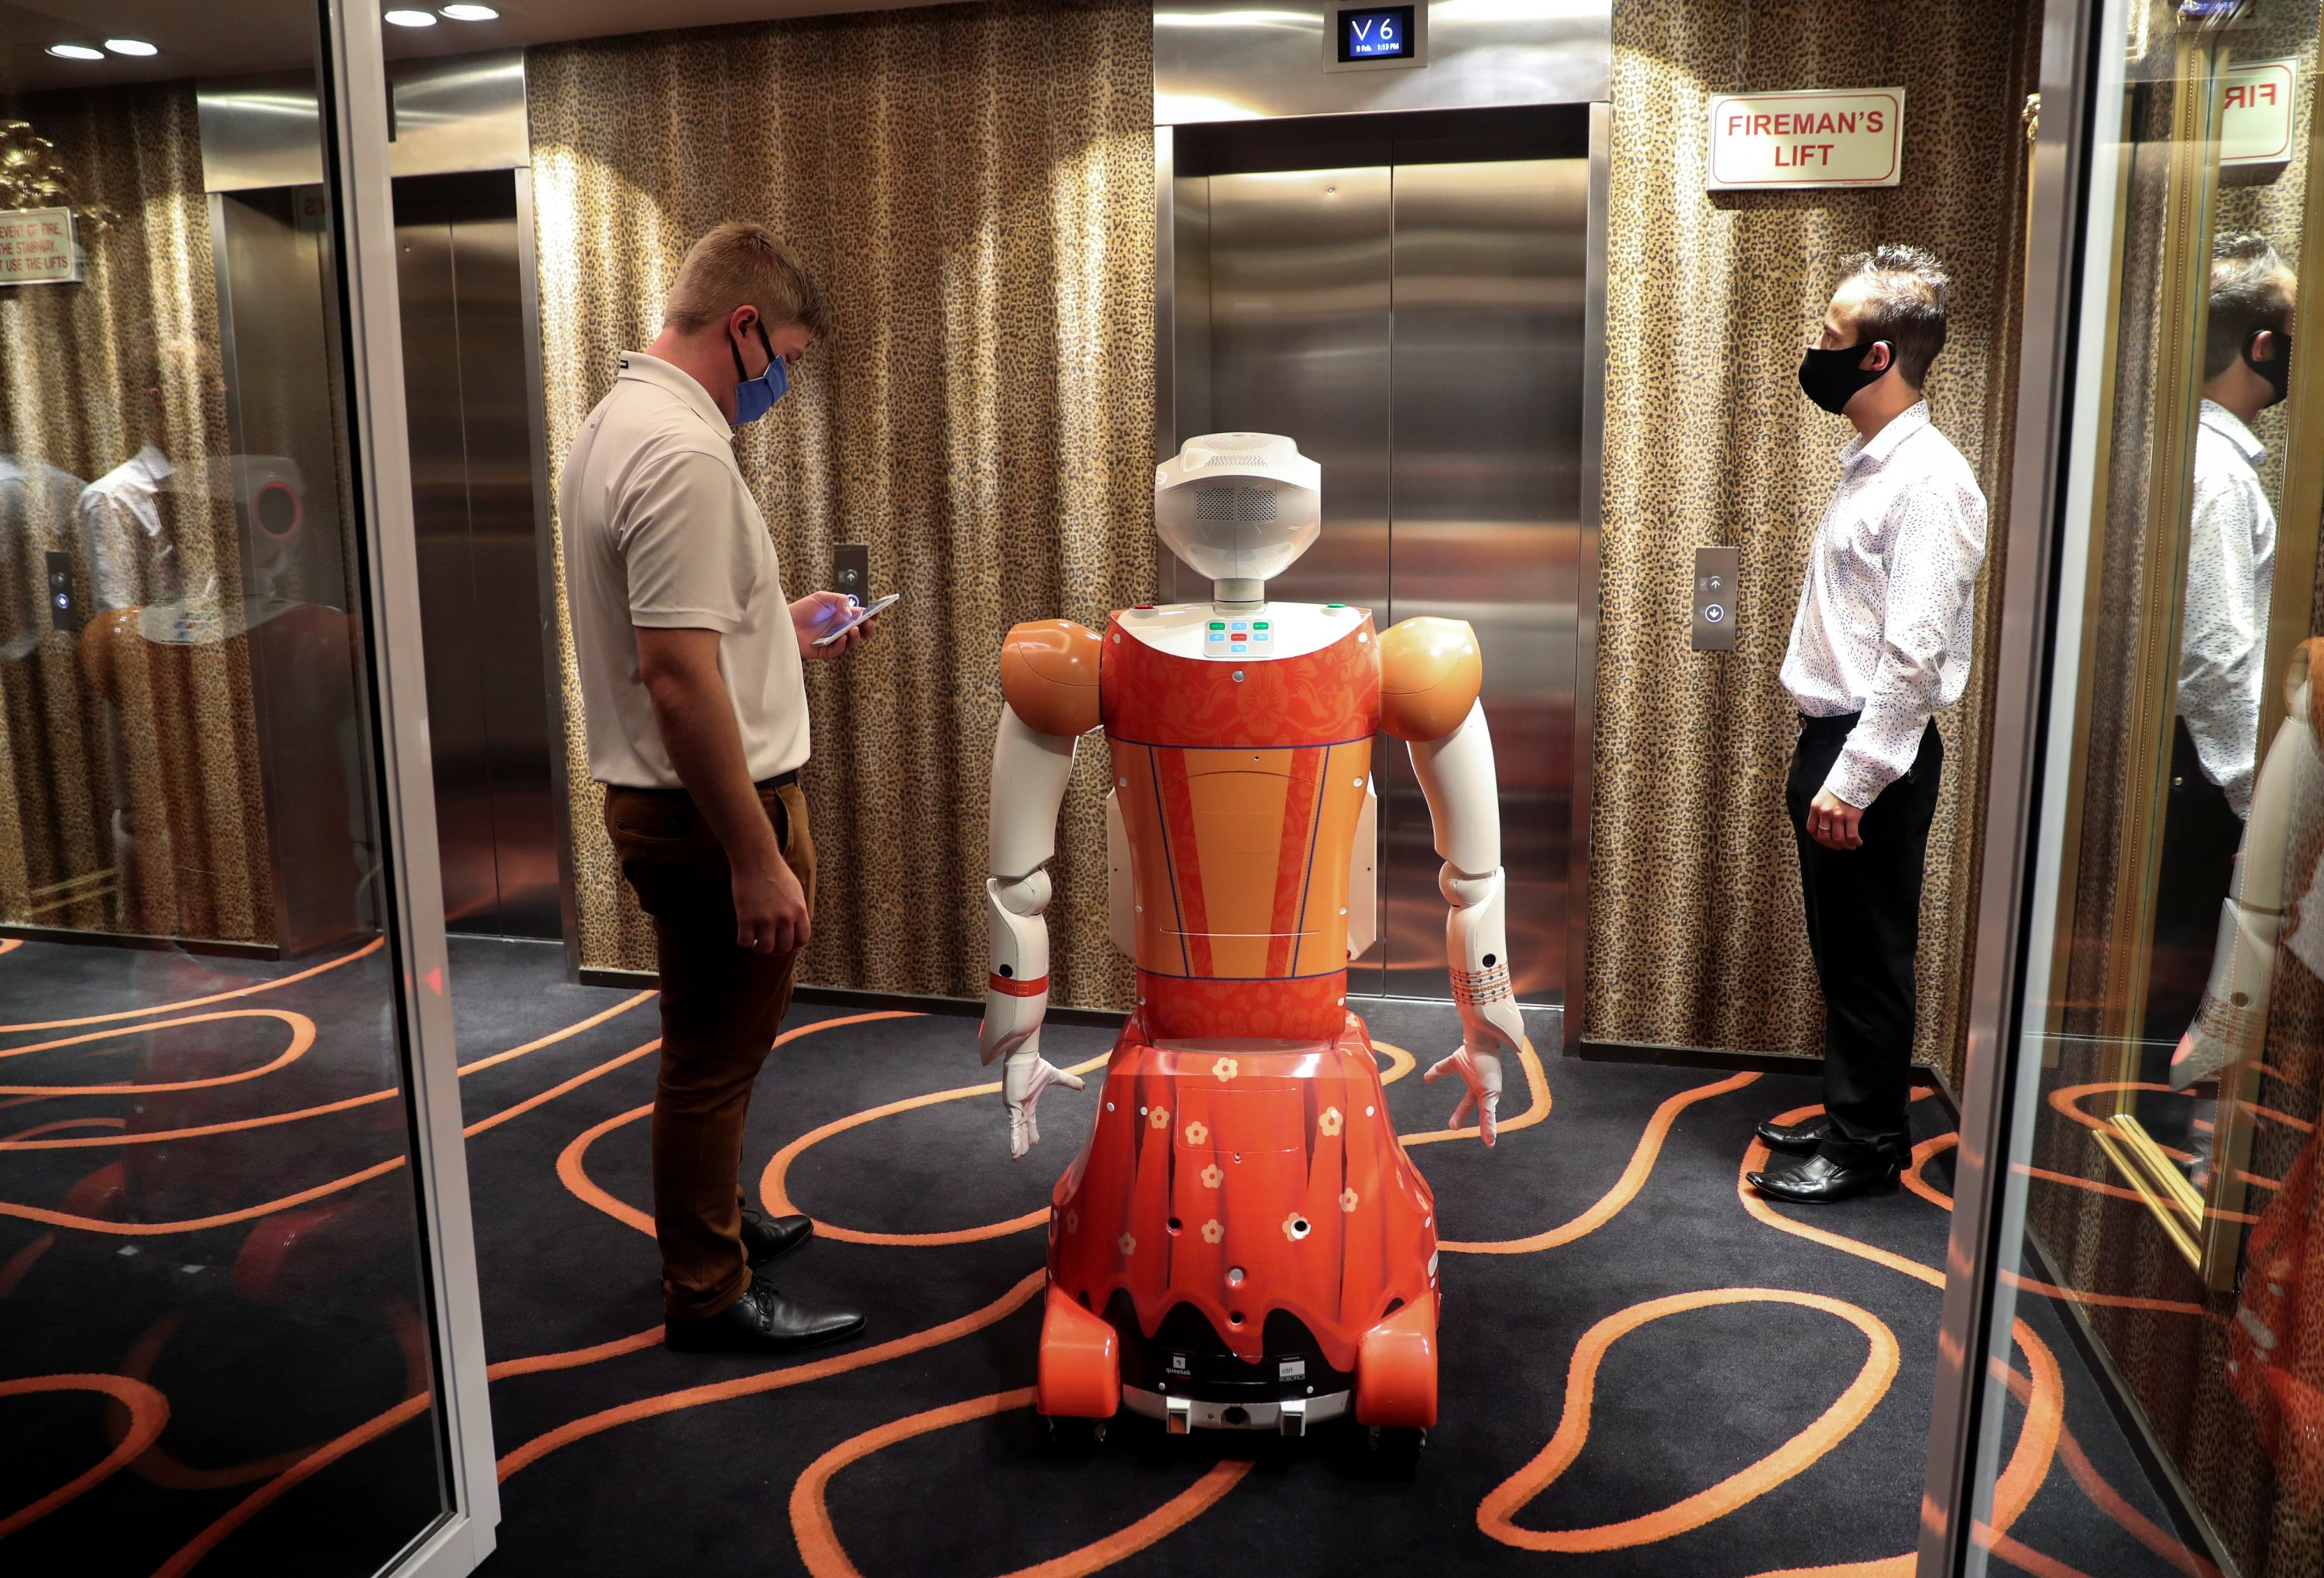 AI-powered robot Ariel waits for a lift before delivering room service at Hotel Sky, the first in Africa to use automated attendants, in Johannesburg, South Africa, Feb. 9, 2021. (Reuters Photo)